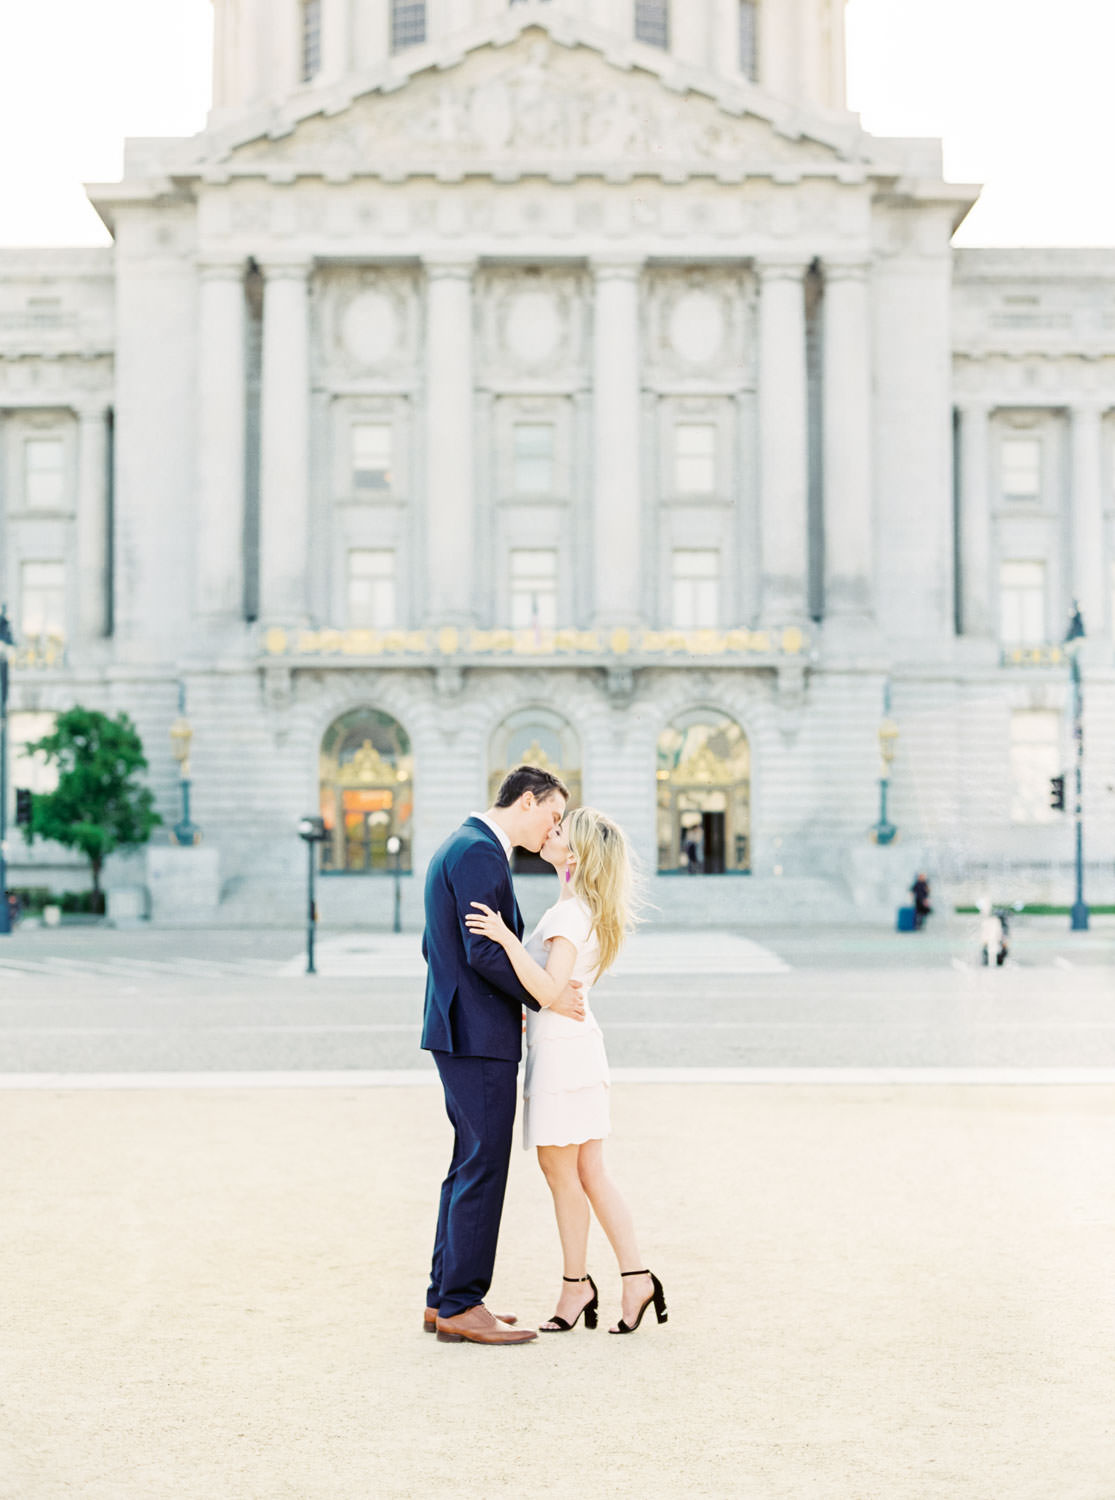 Contax 645 film photo from wedding photographer, bride and groom outside of city hall in blush dress and navy suit for San Francisco City Hall engagement photos, Cavin Elizabeth Photography